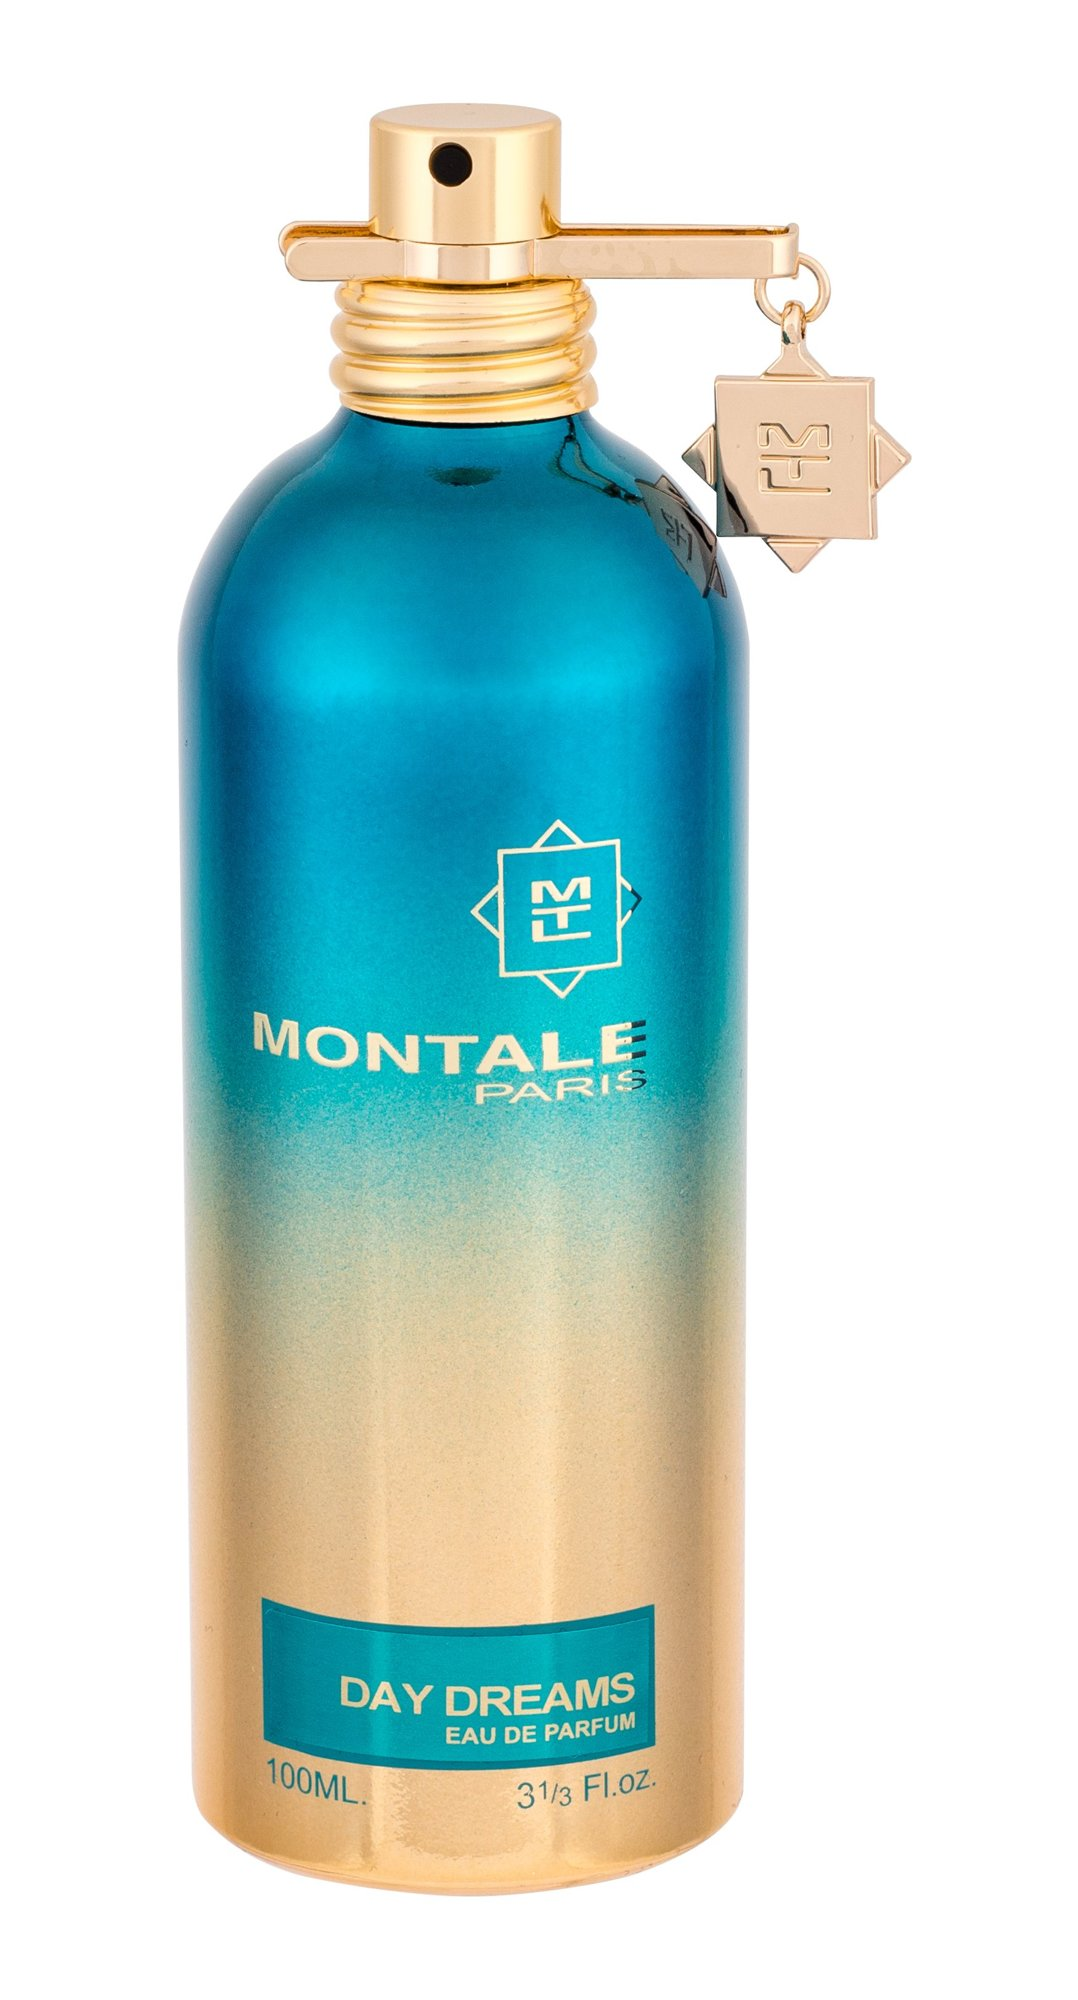 Montale Paris Day Dreams EDP 100ml